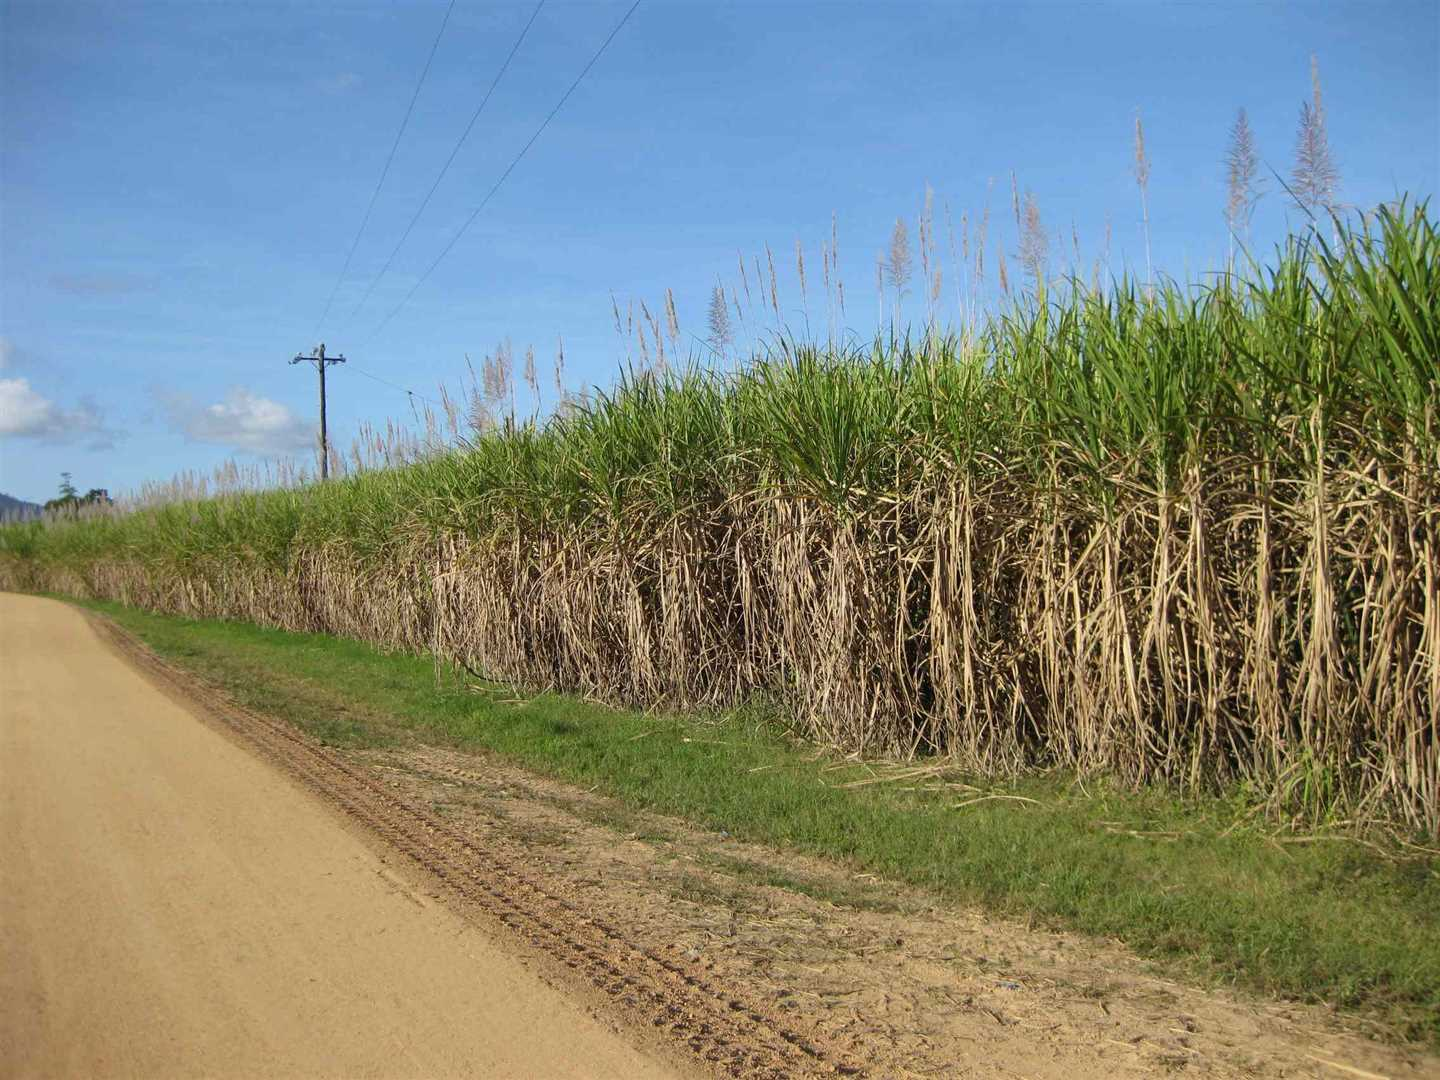 View of part of property showing some cane, photo 2